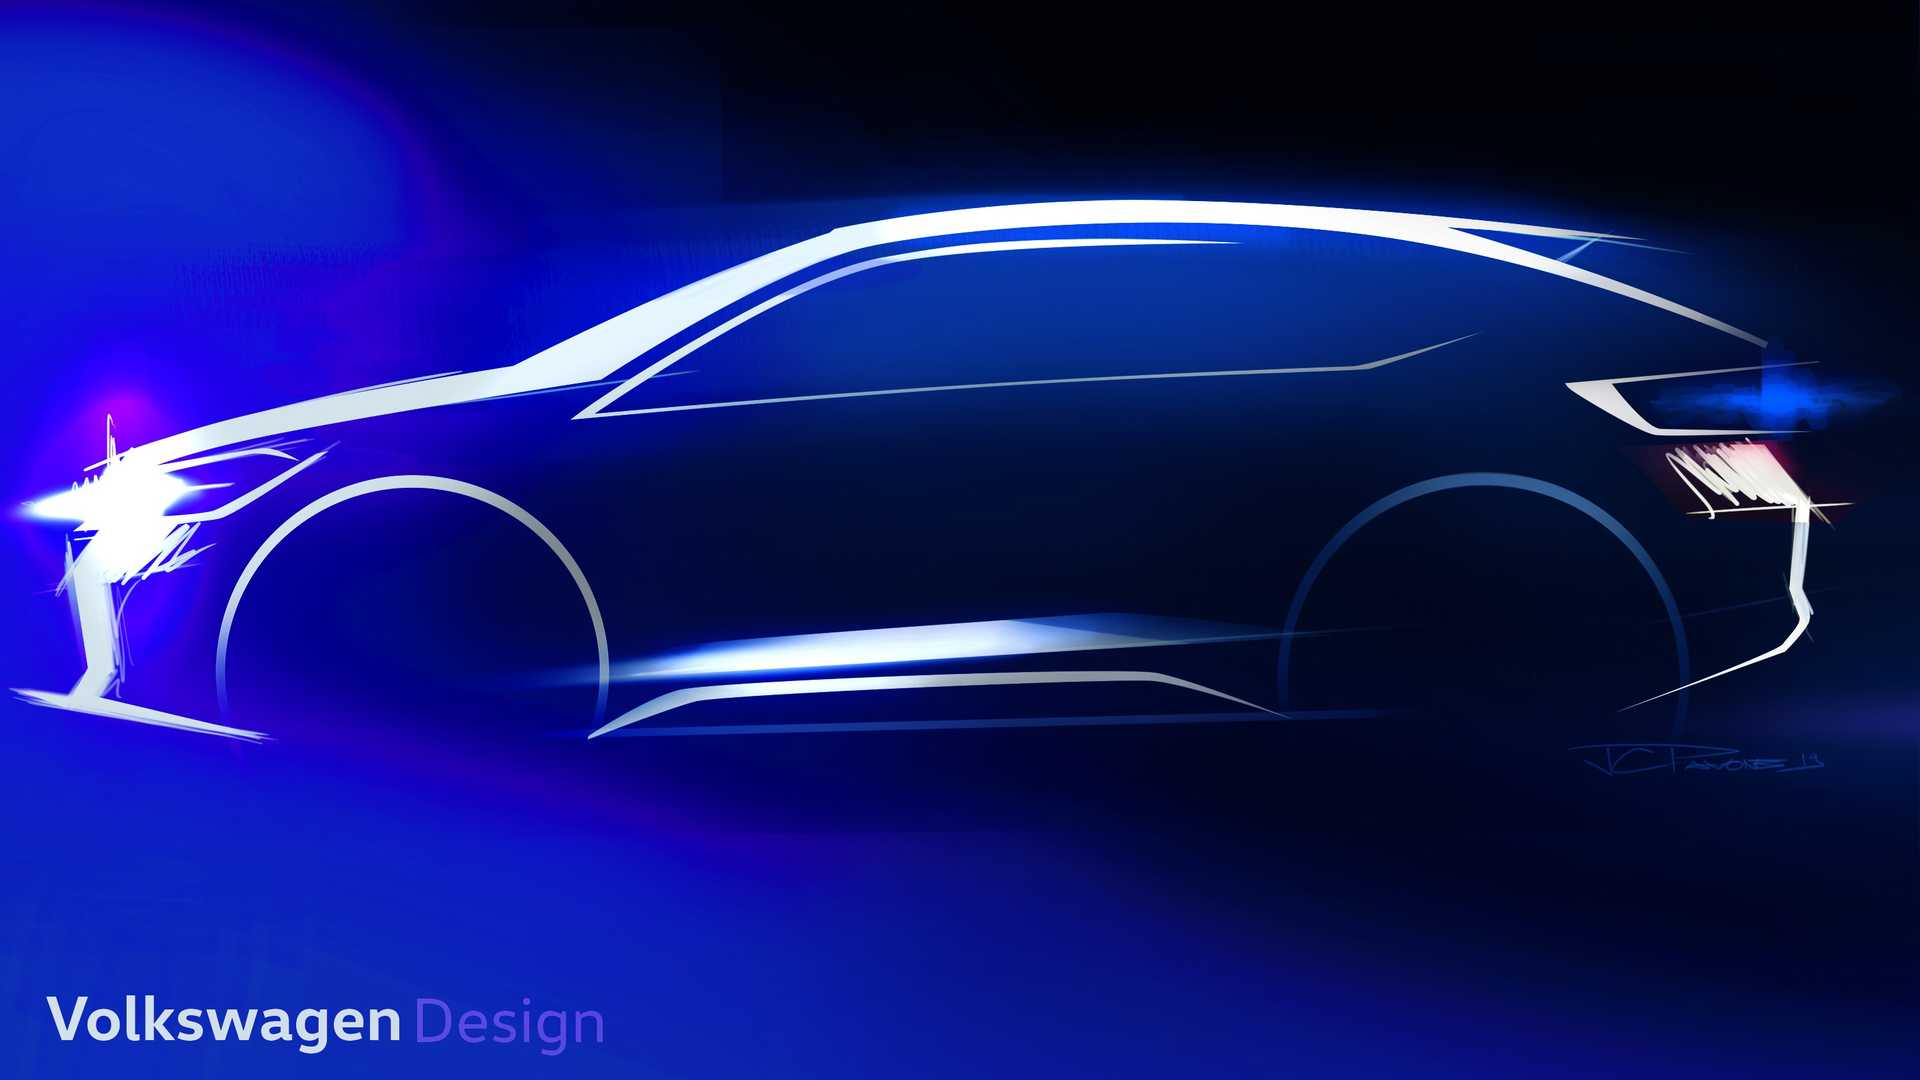 VW New Urban Coupe Is a Small Swoopy Crossover Coming Soon